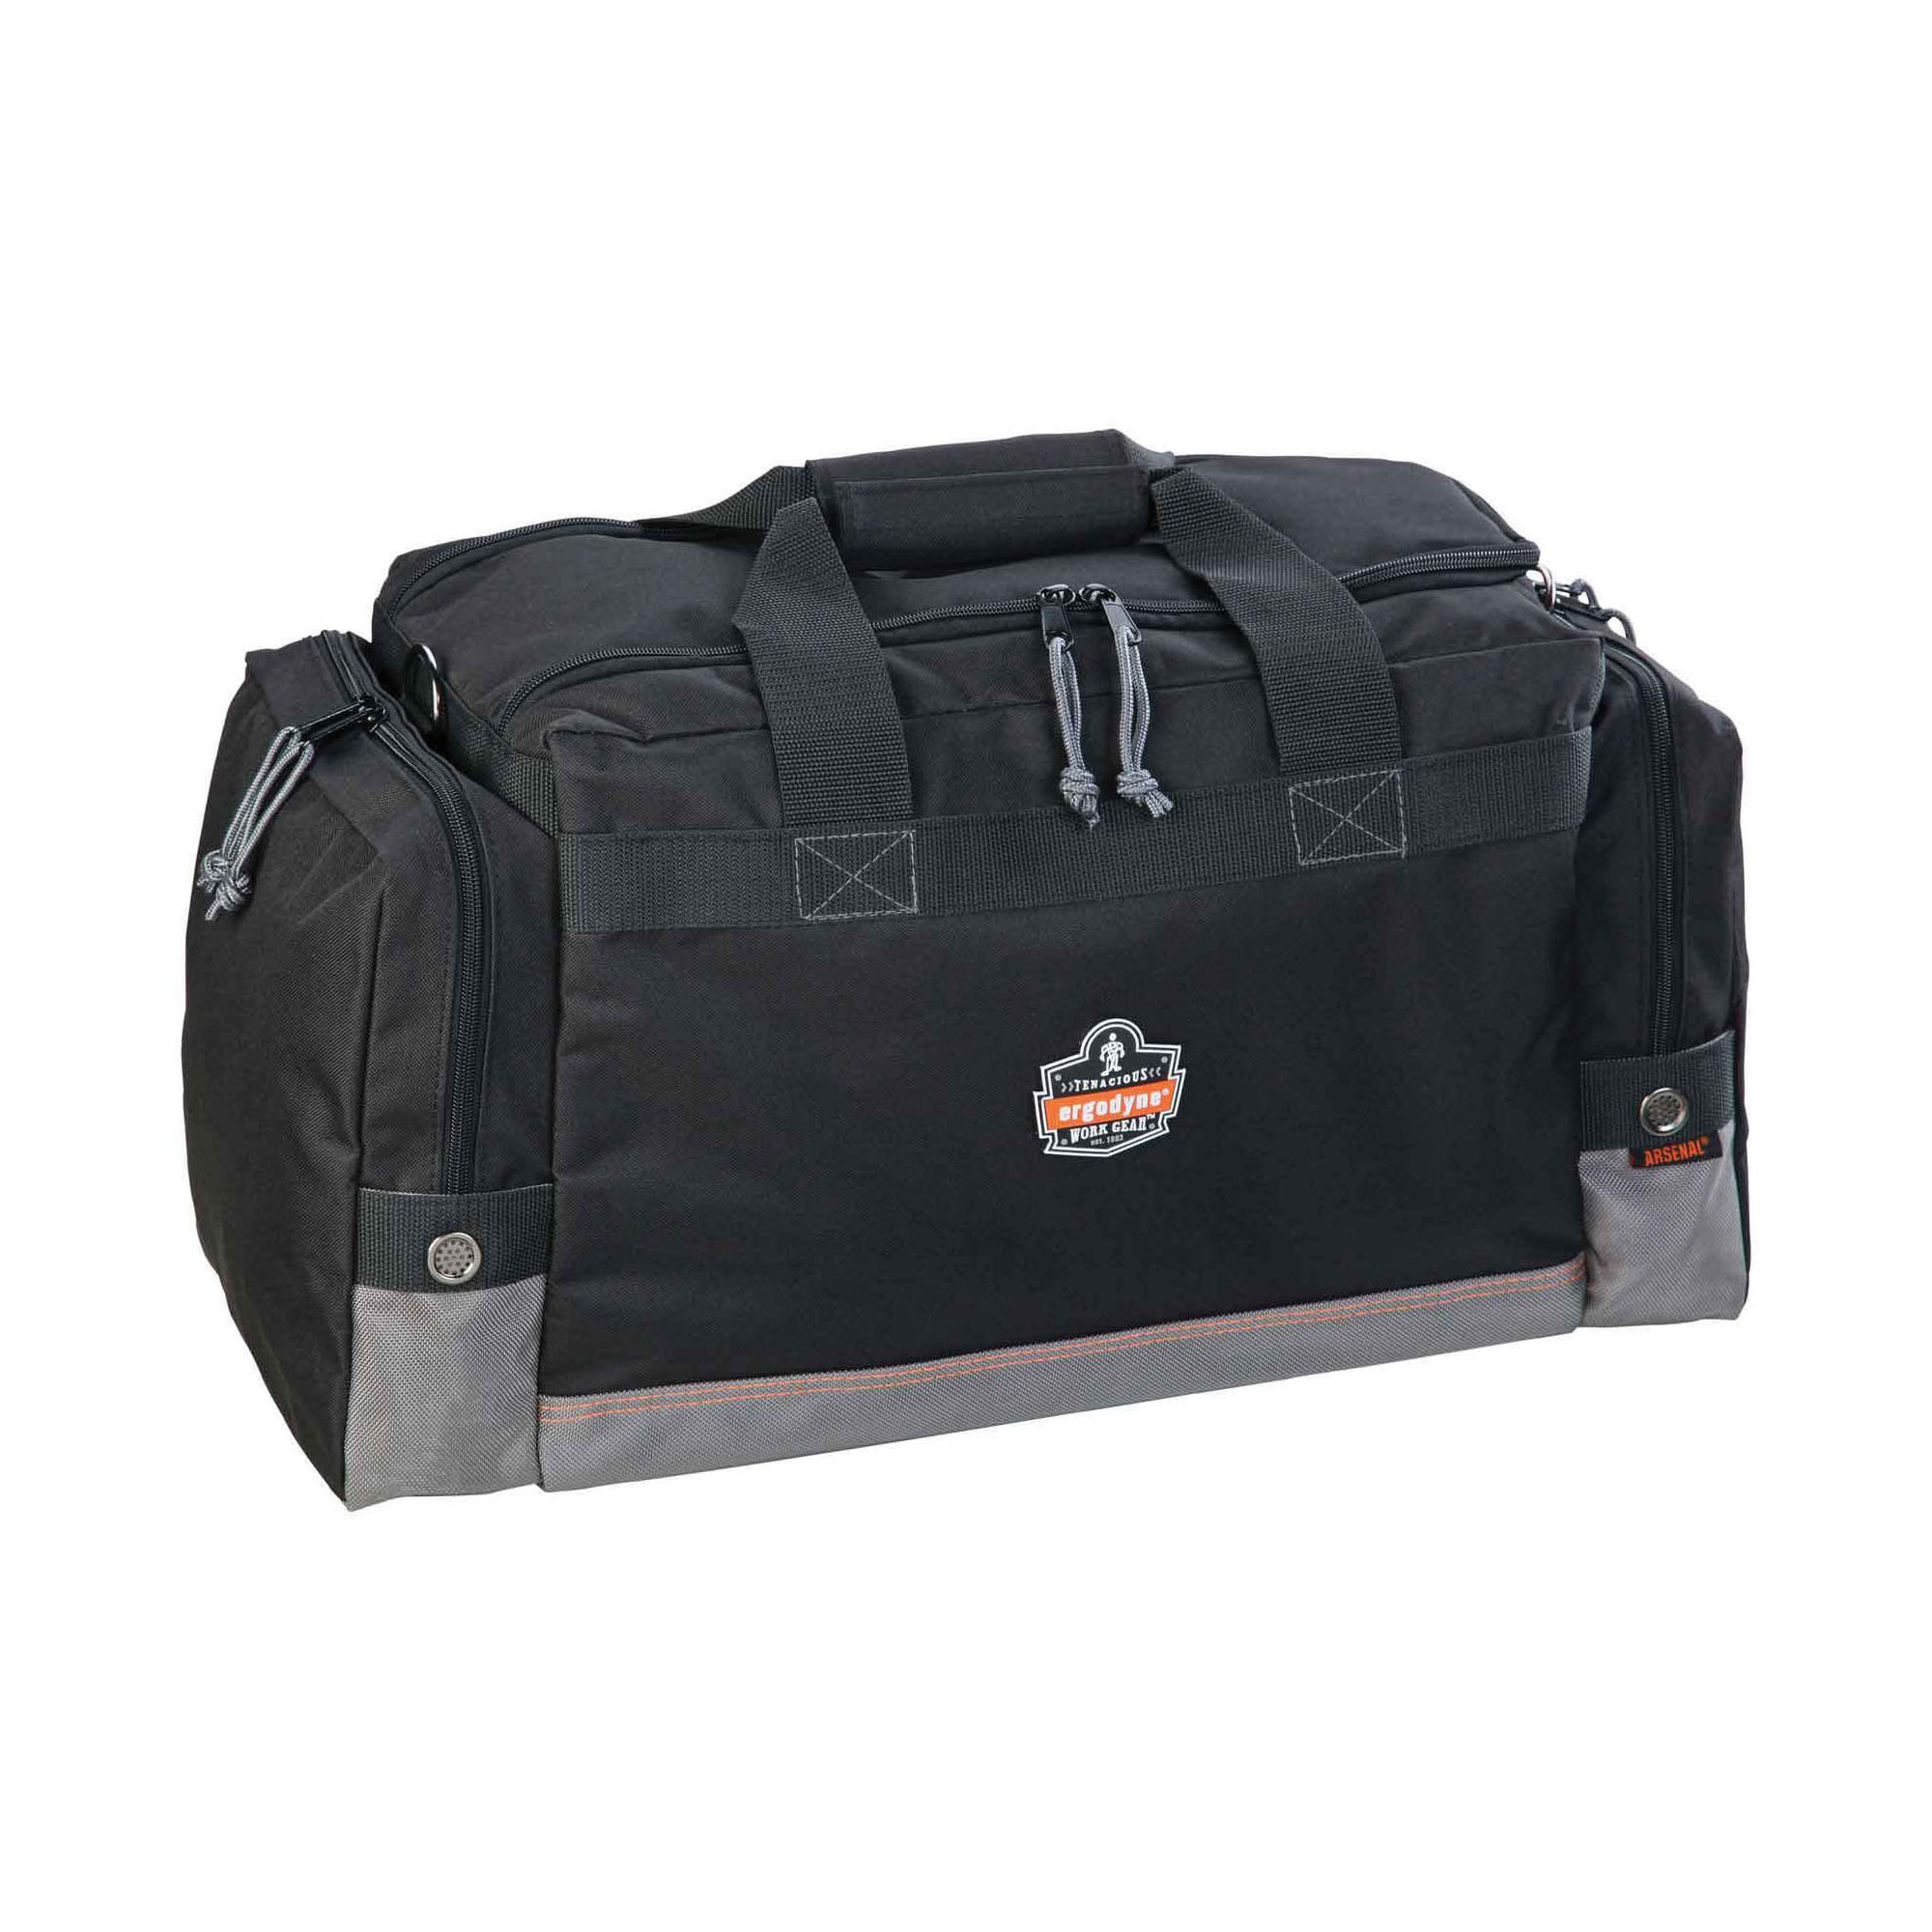 Arsenal® 13015 5115 General Duty Small Duffel Gear Bag, Black, 600D Polyester, 1487.5 cu-in Storage, 10 in H x 8-1/2 in W x 17-1/2 in D